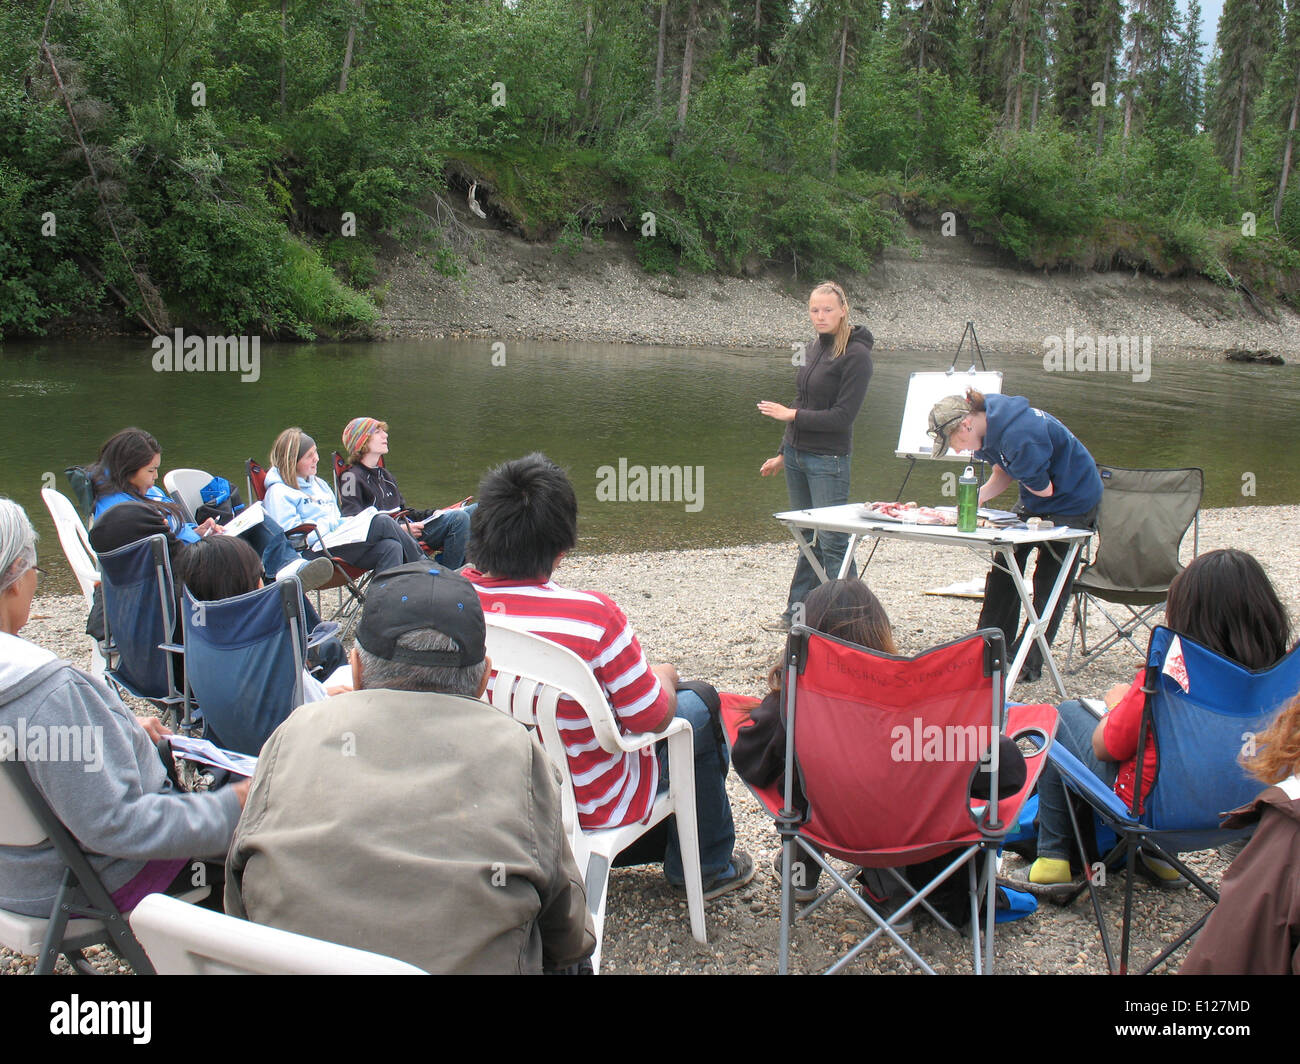 Tcc stock photos tcc stock images alamy for Kates fish camp